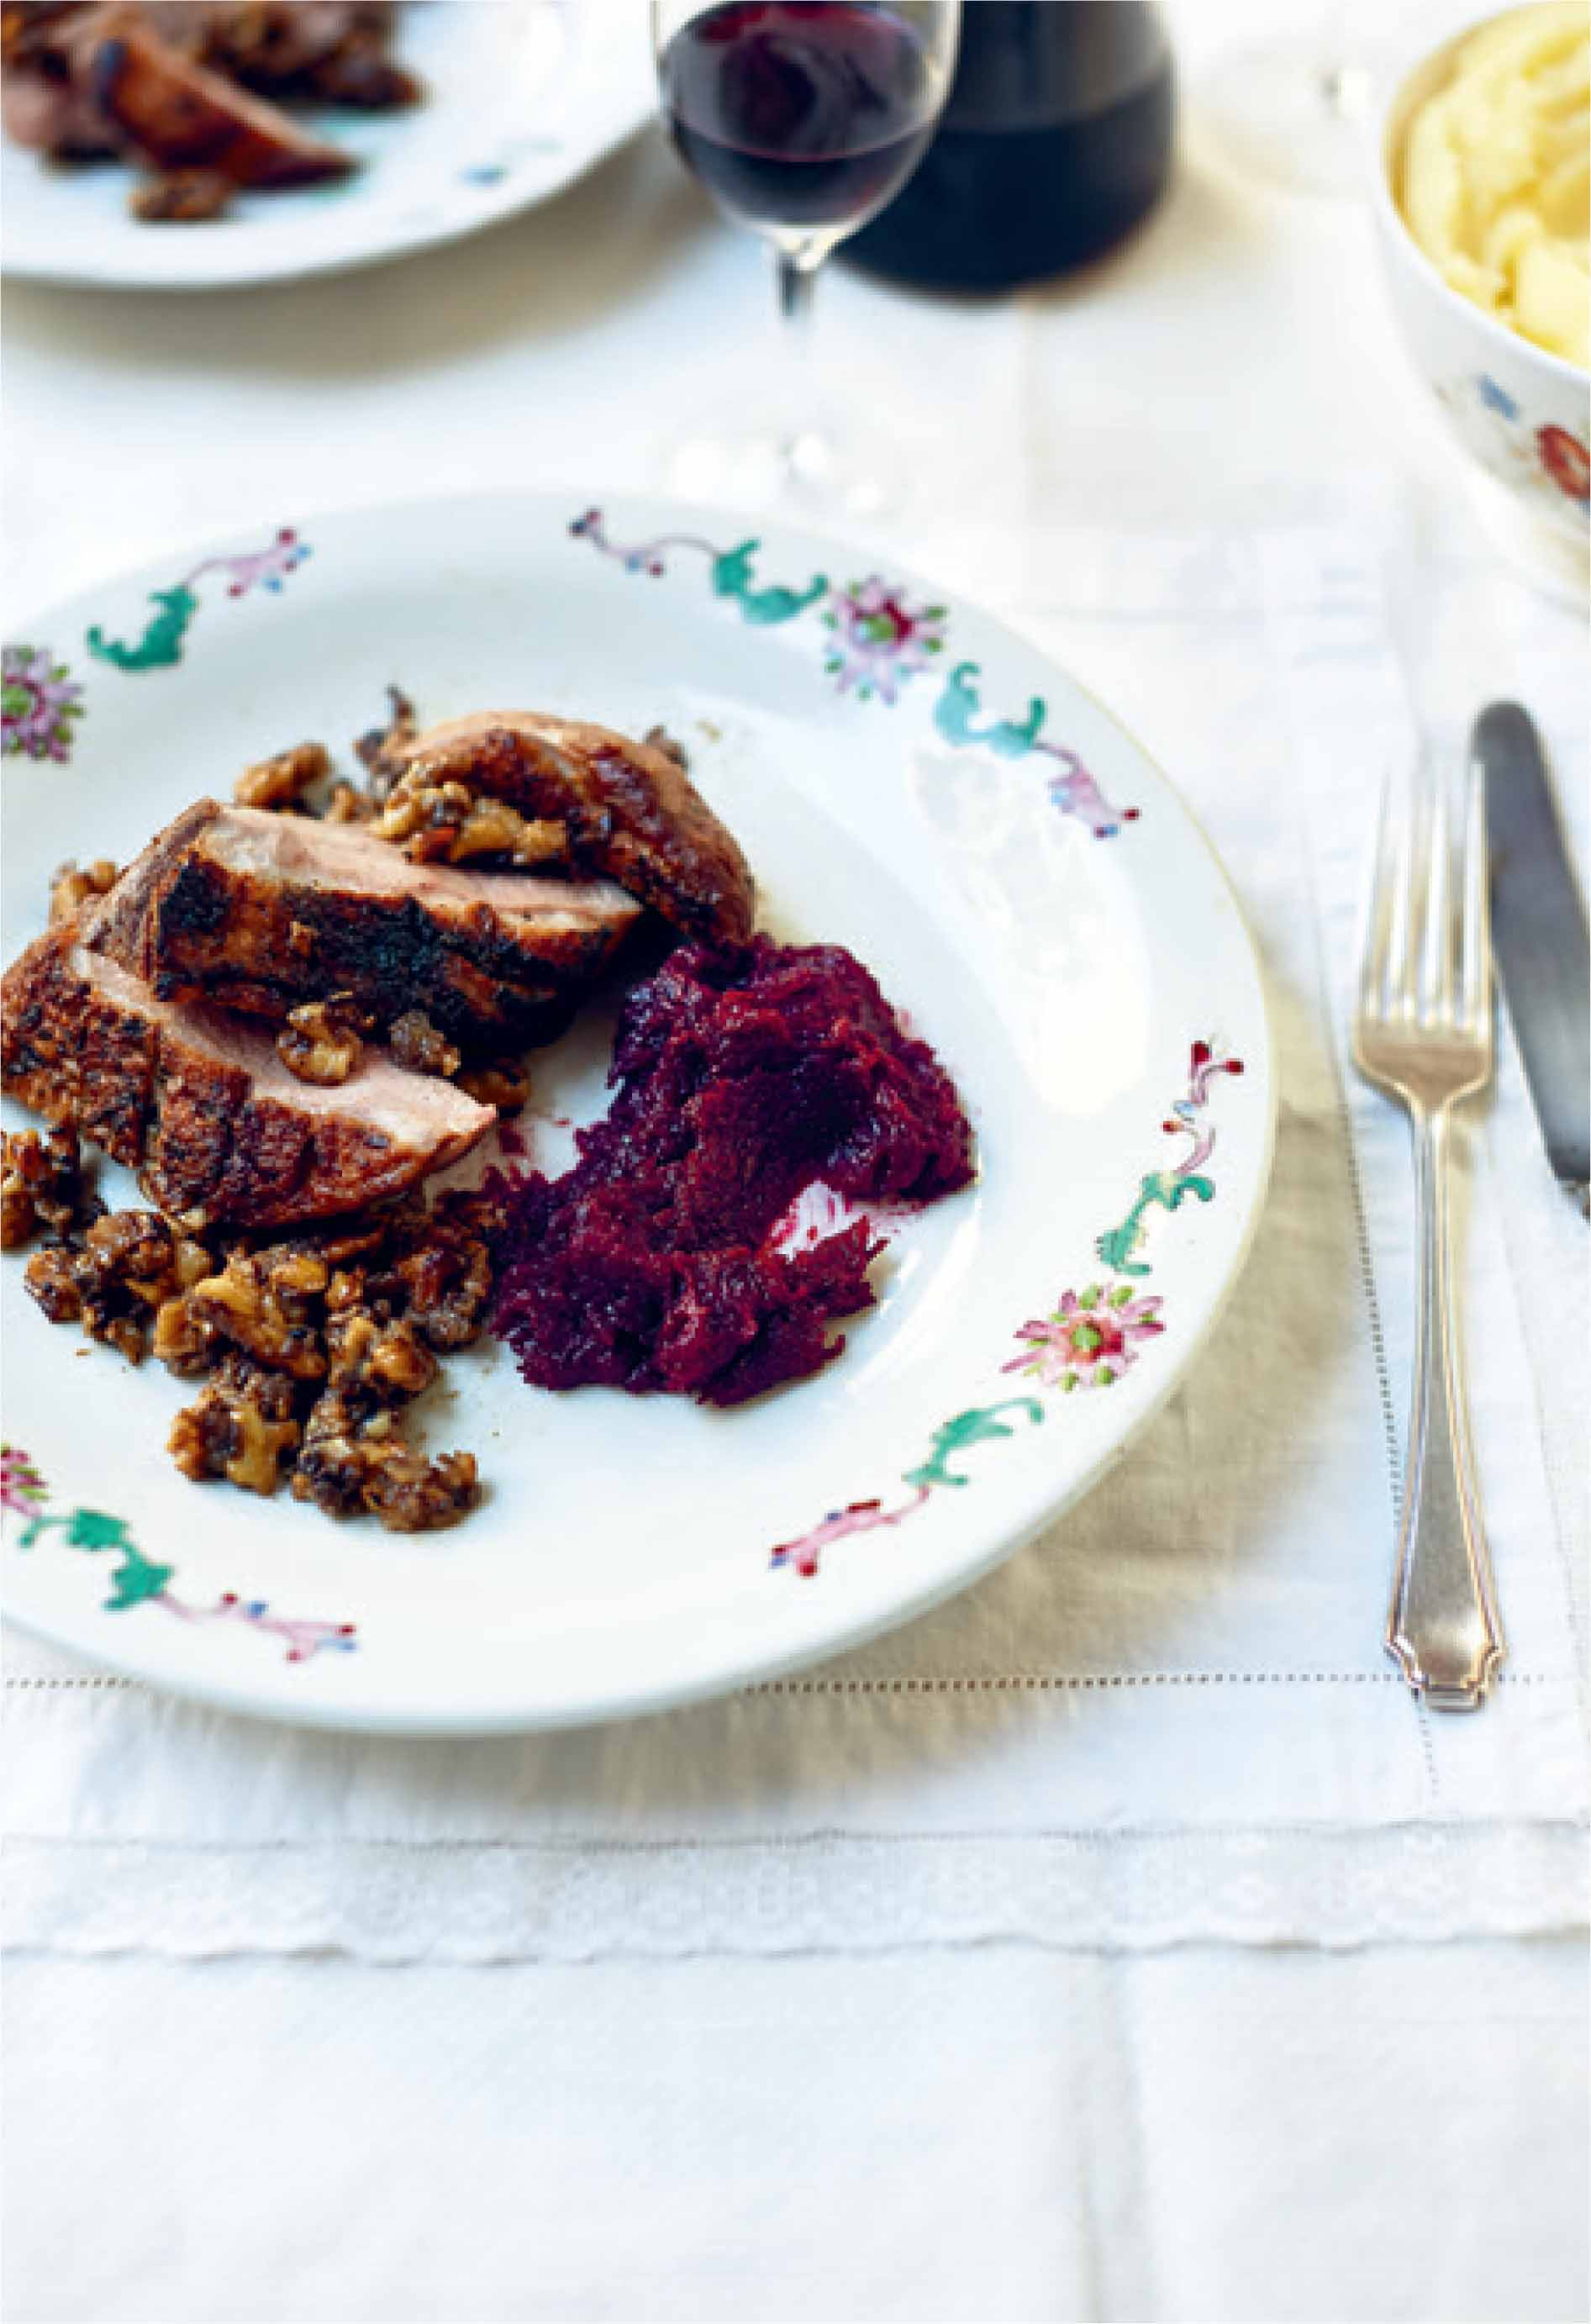 Crispy duck with apple and walnut sauce